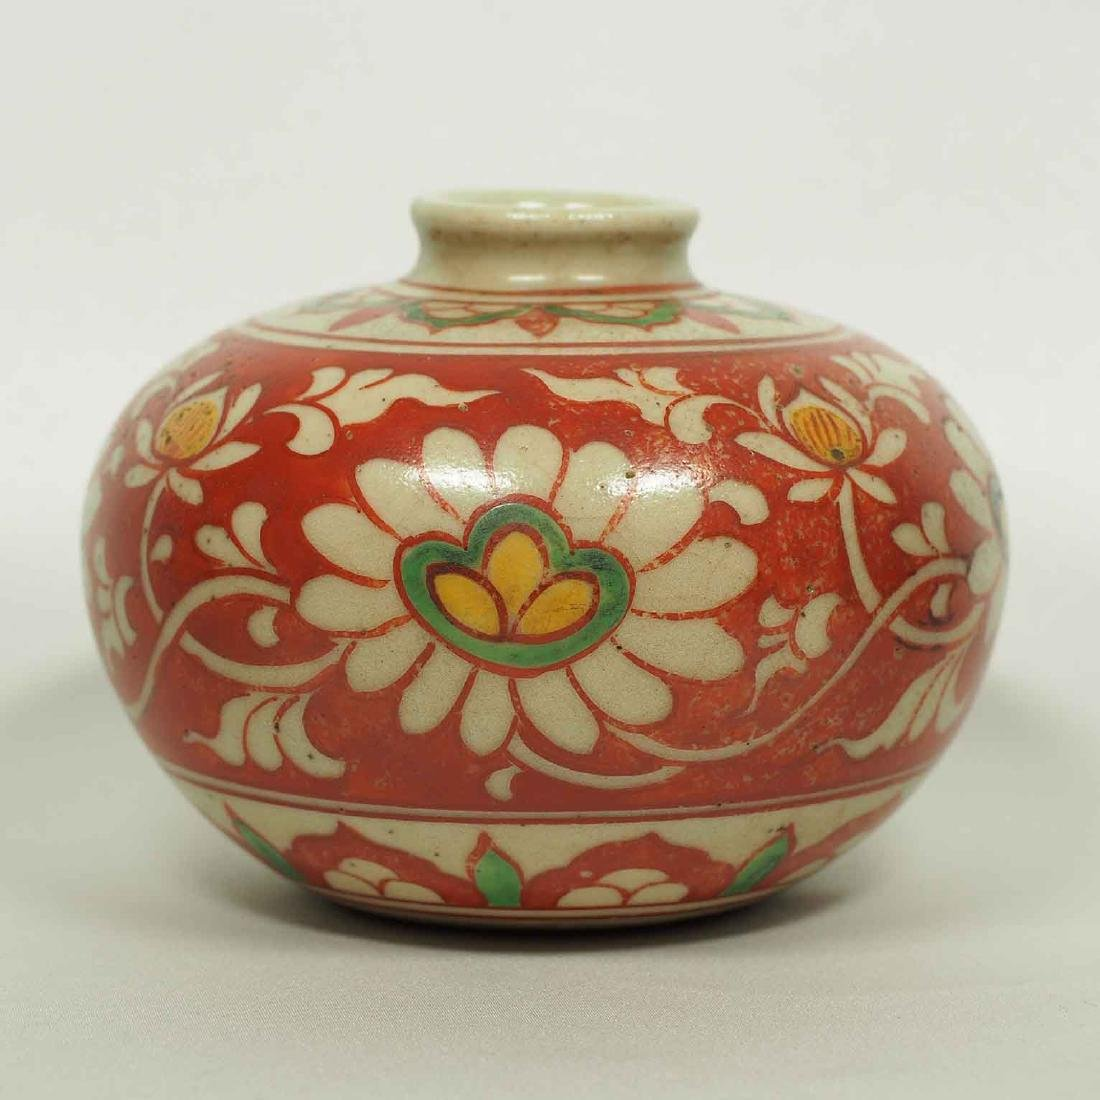 Large Wucai Jarlet with Floral Scroll Design, late Ming